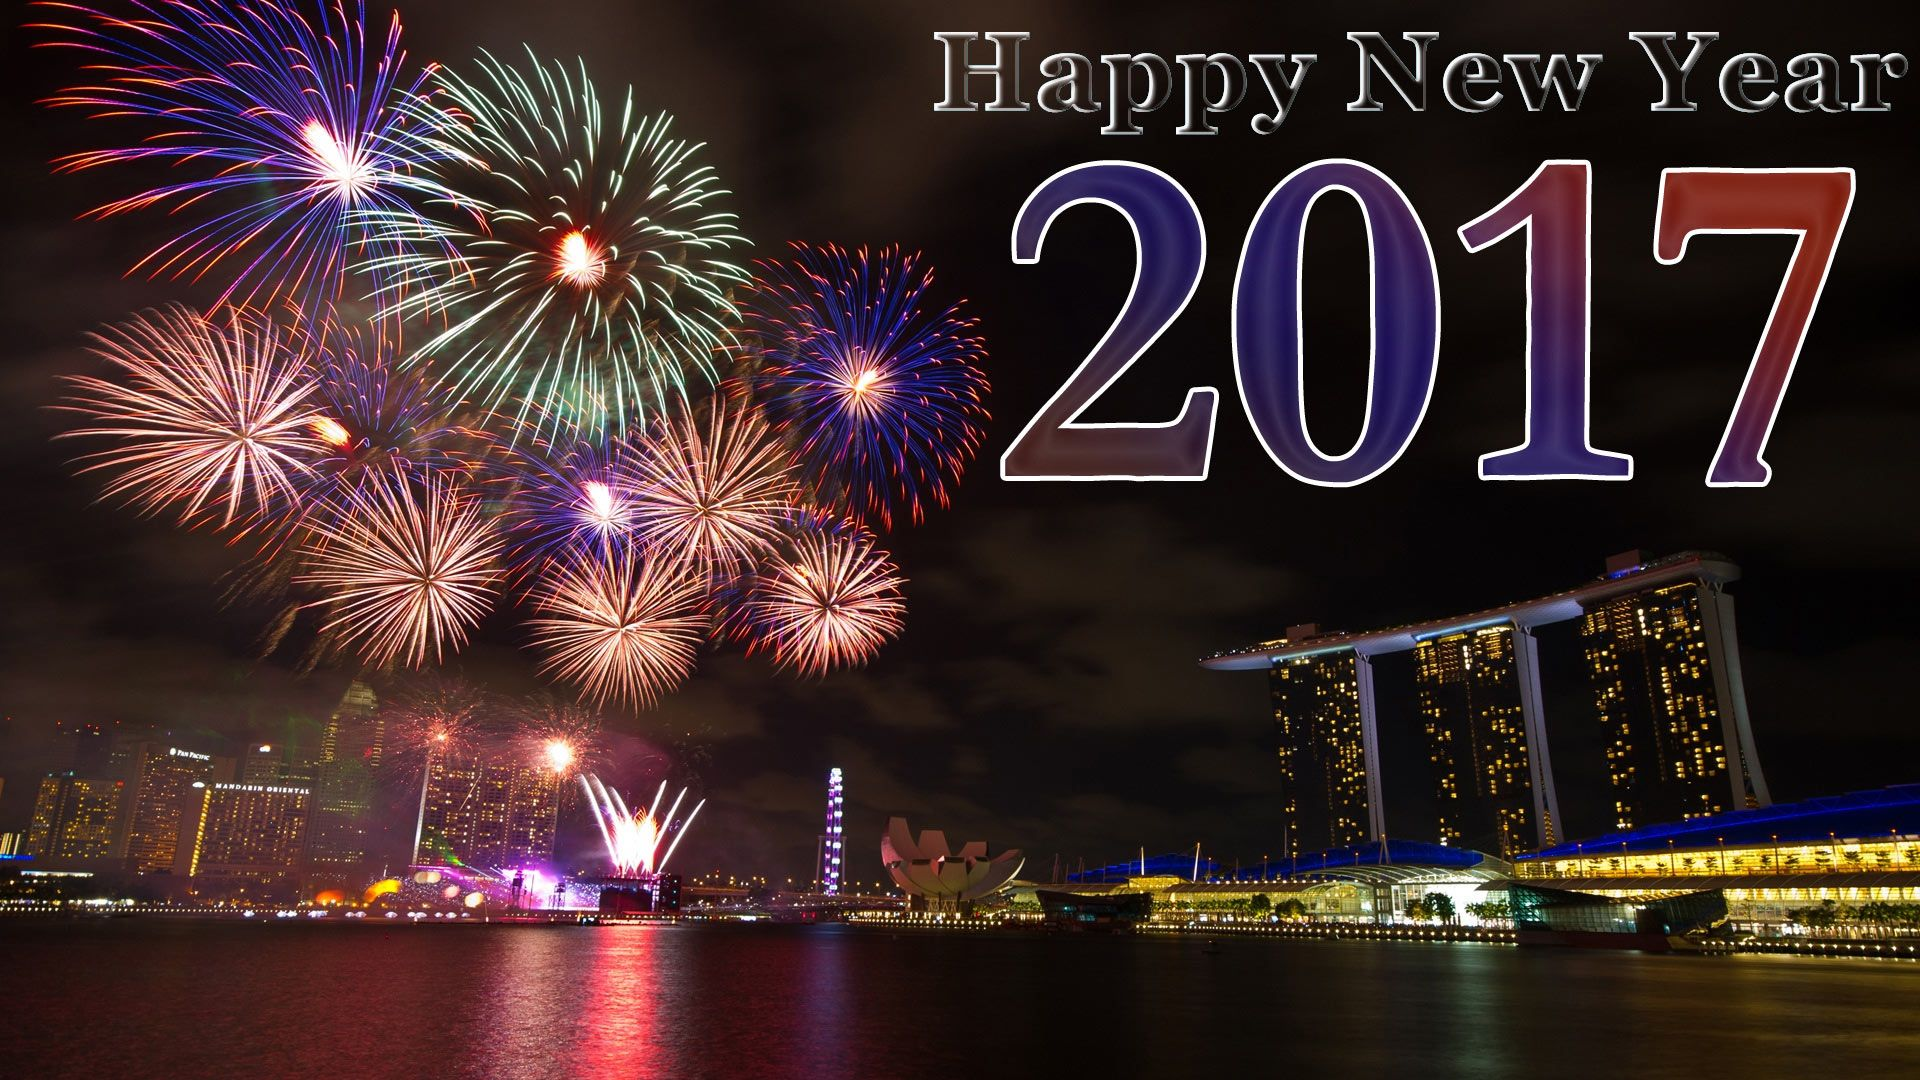 Pin By Morehdwallpapers On New Year 2017 Wallpaper With Images